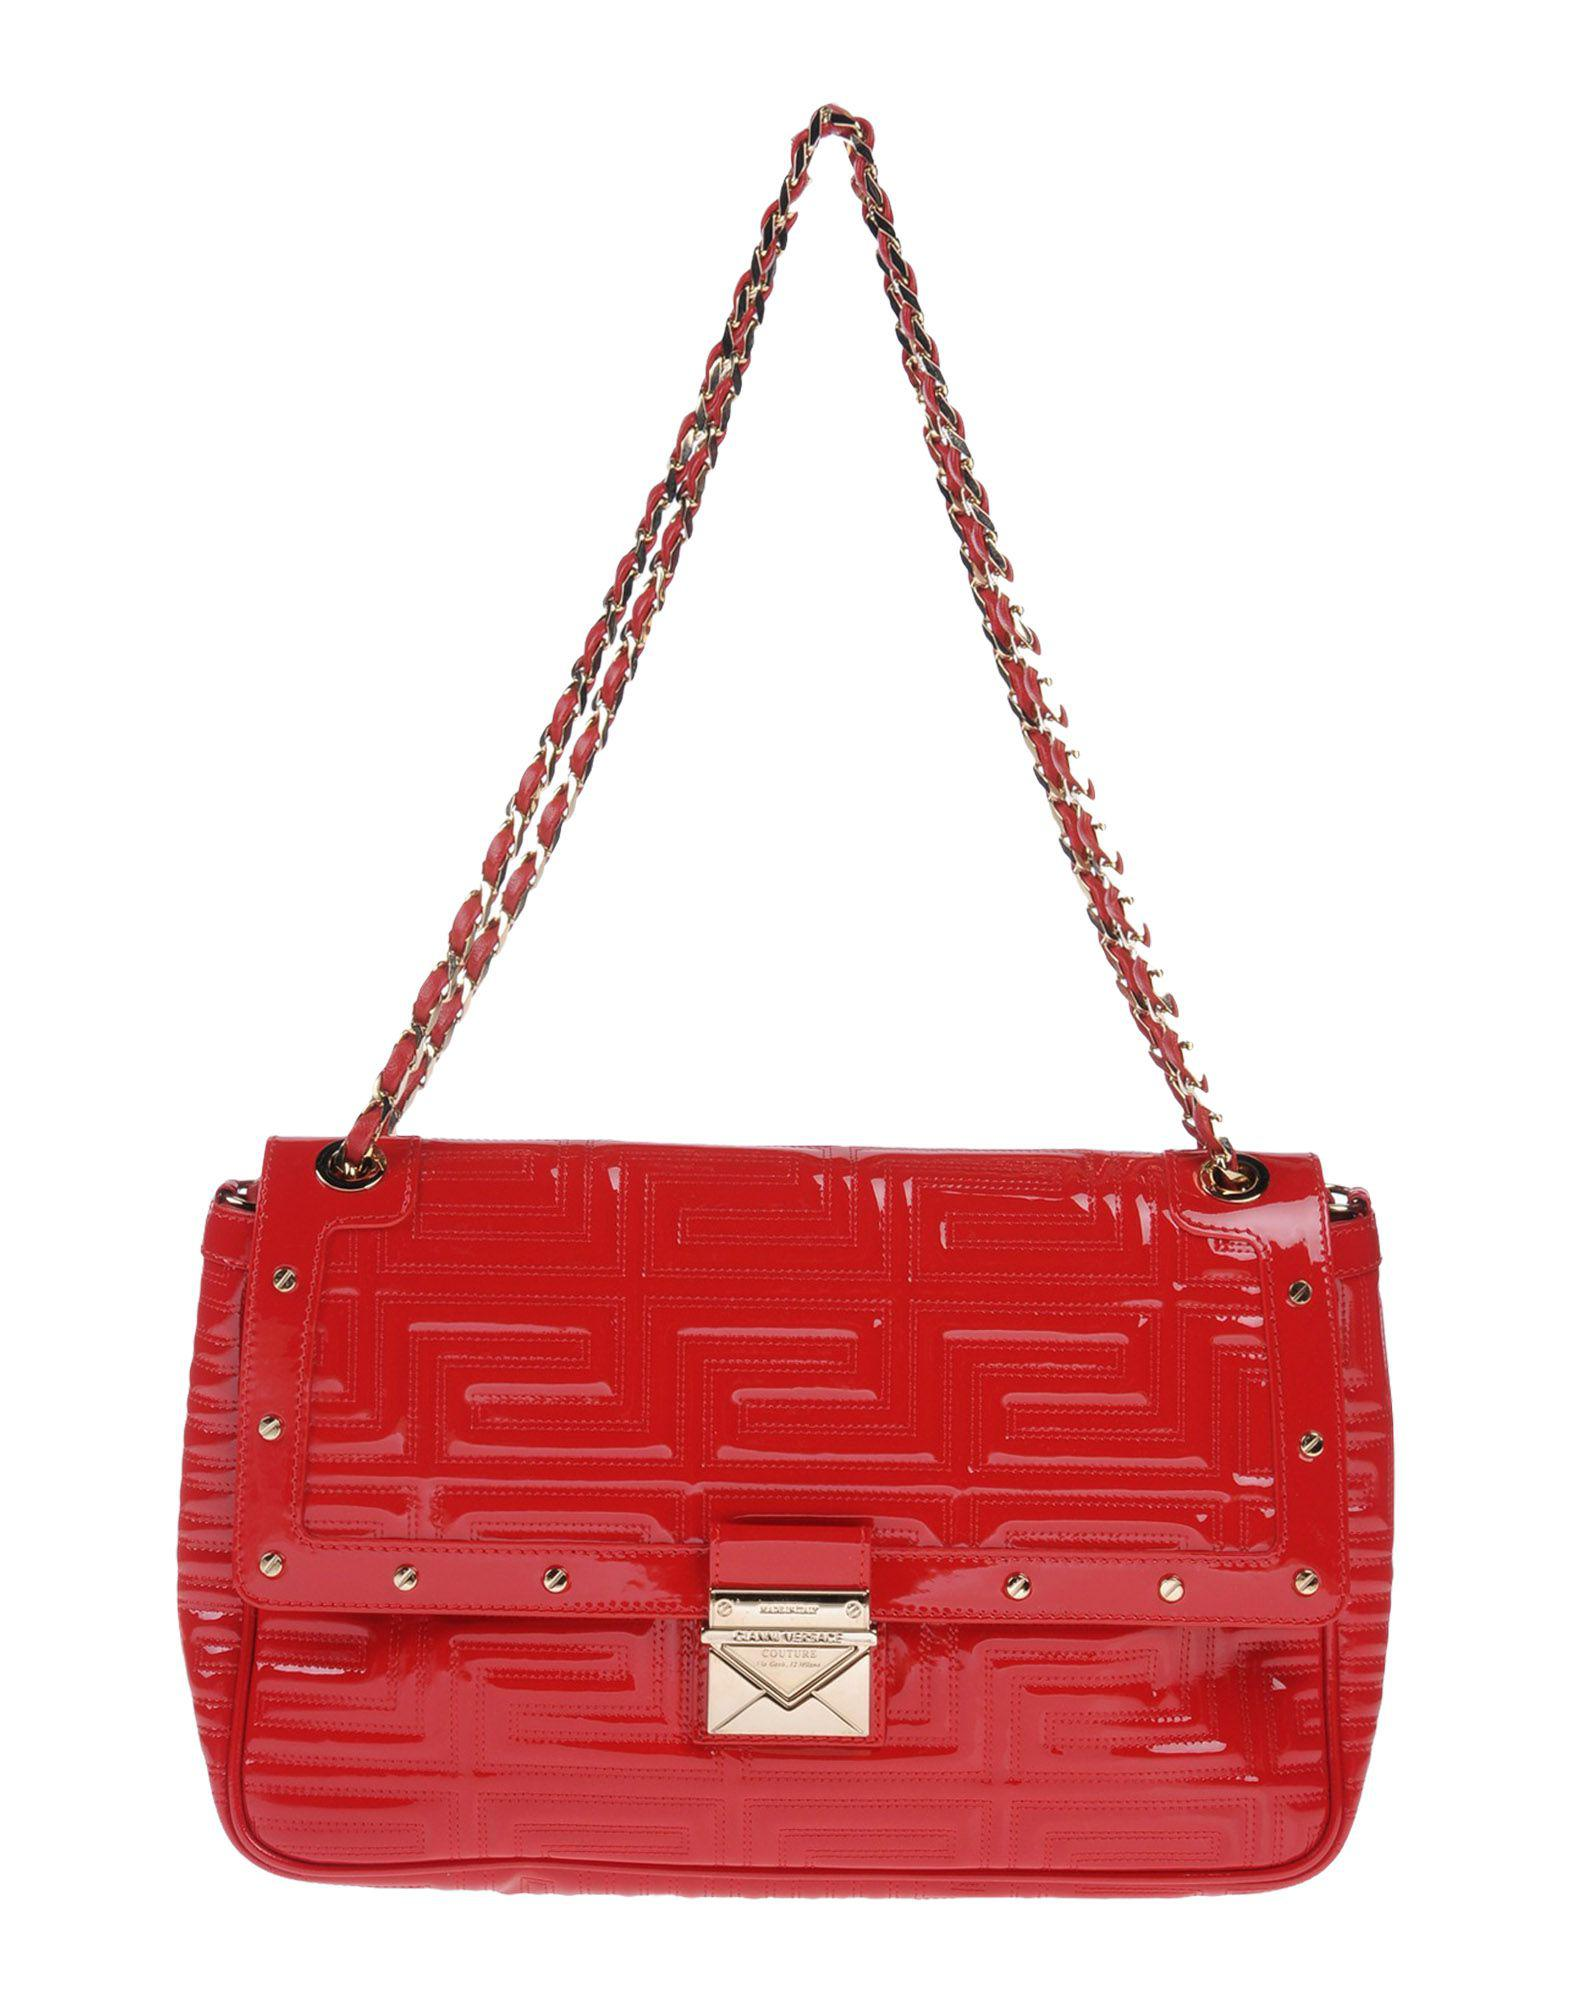 b89210b4dc Gianni Versace Couture Shoulder Bag in Red - Lyst